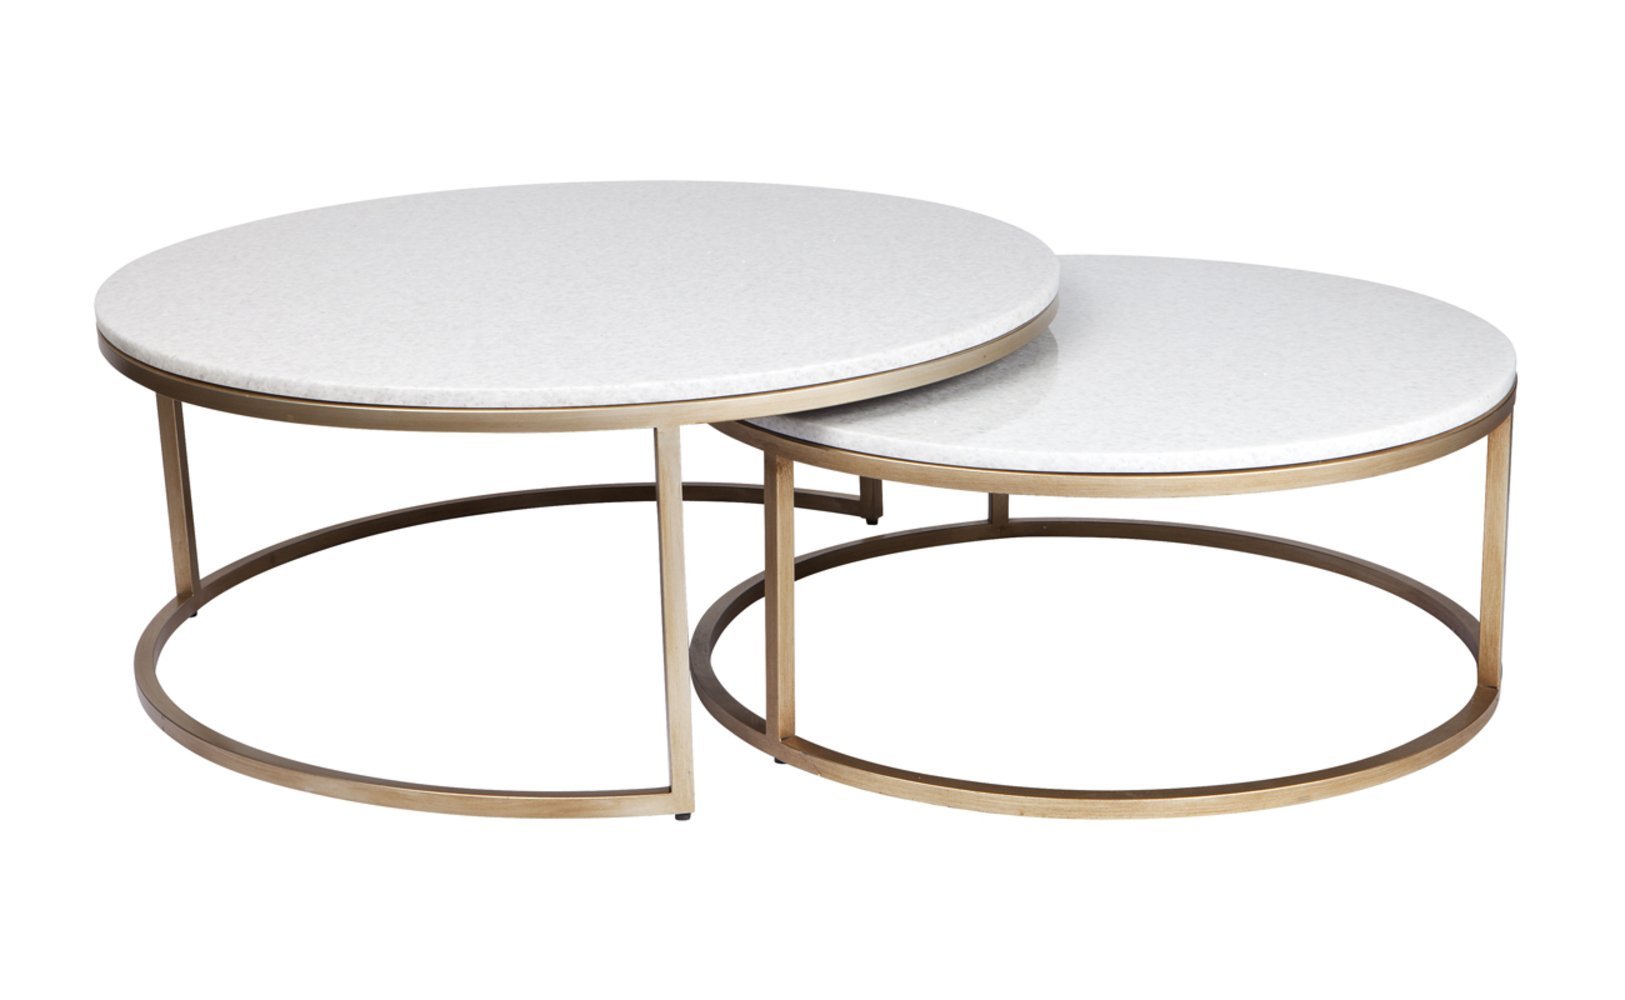 Chloe Coffee Tables Set/2 by Cafe Lighting, a Coffee Table for sale on Style Sourcebook